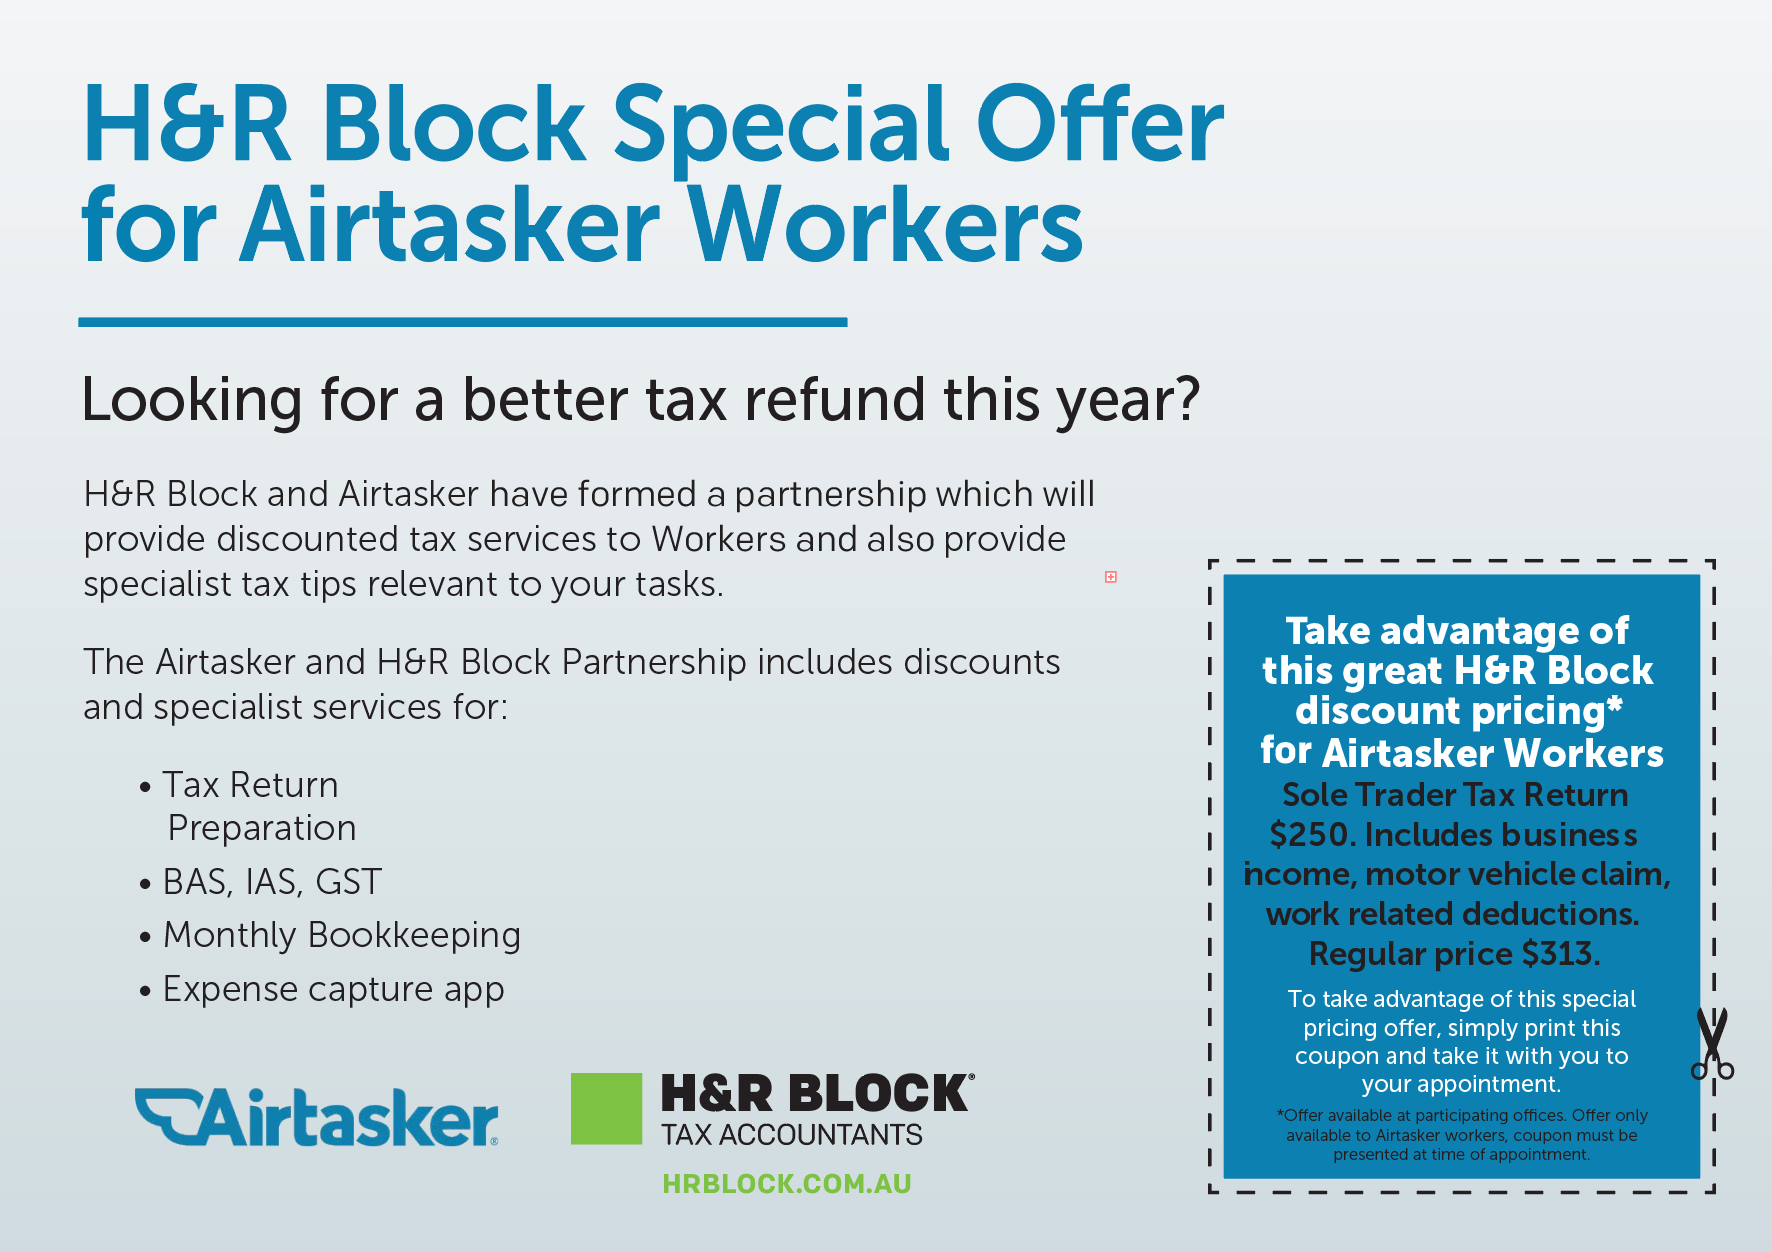 H&R block Airtasker Special Offer